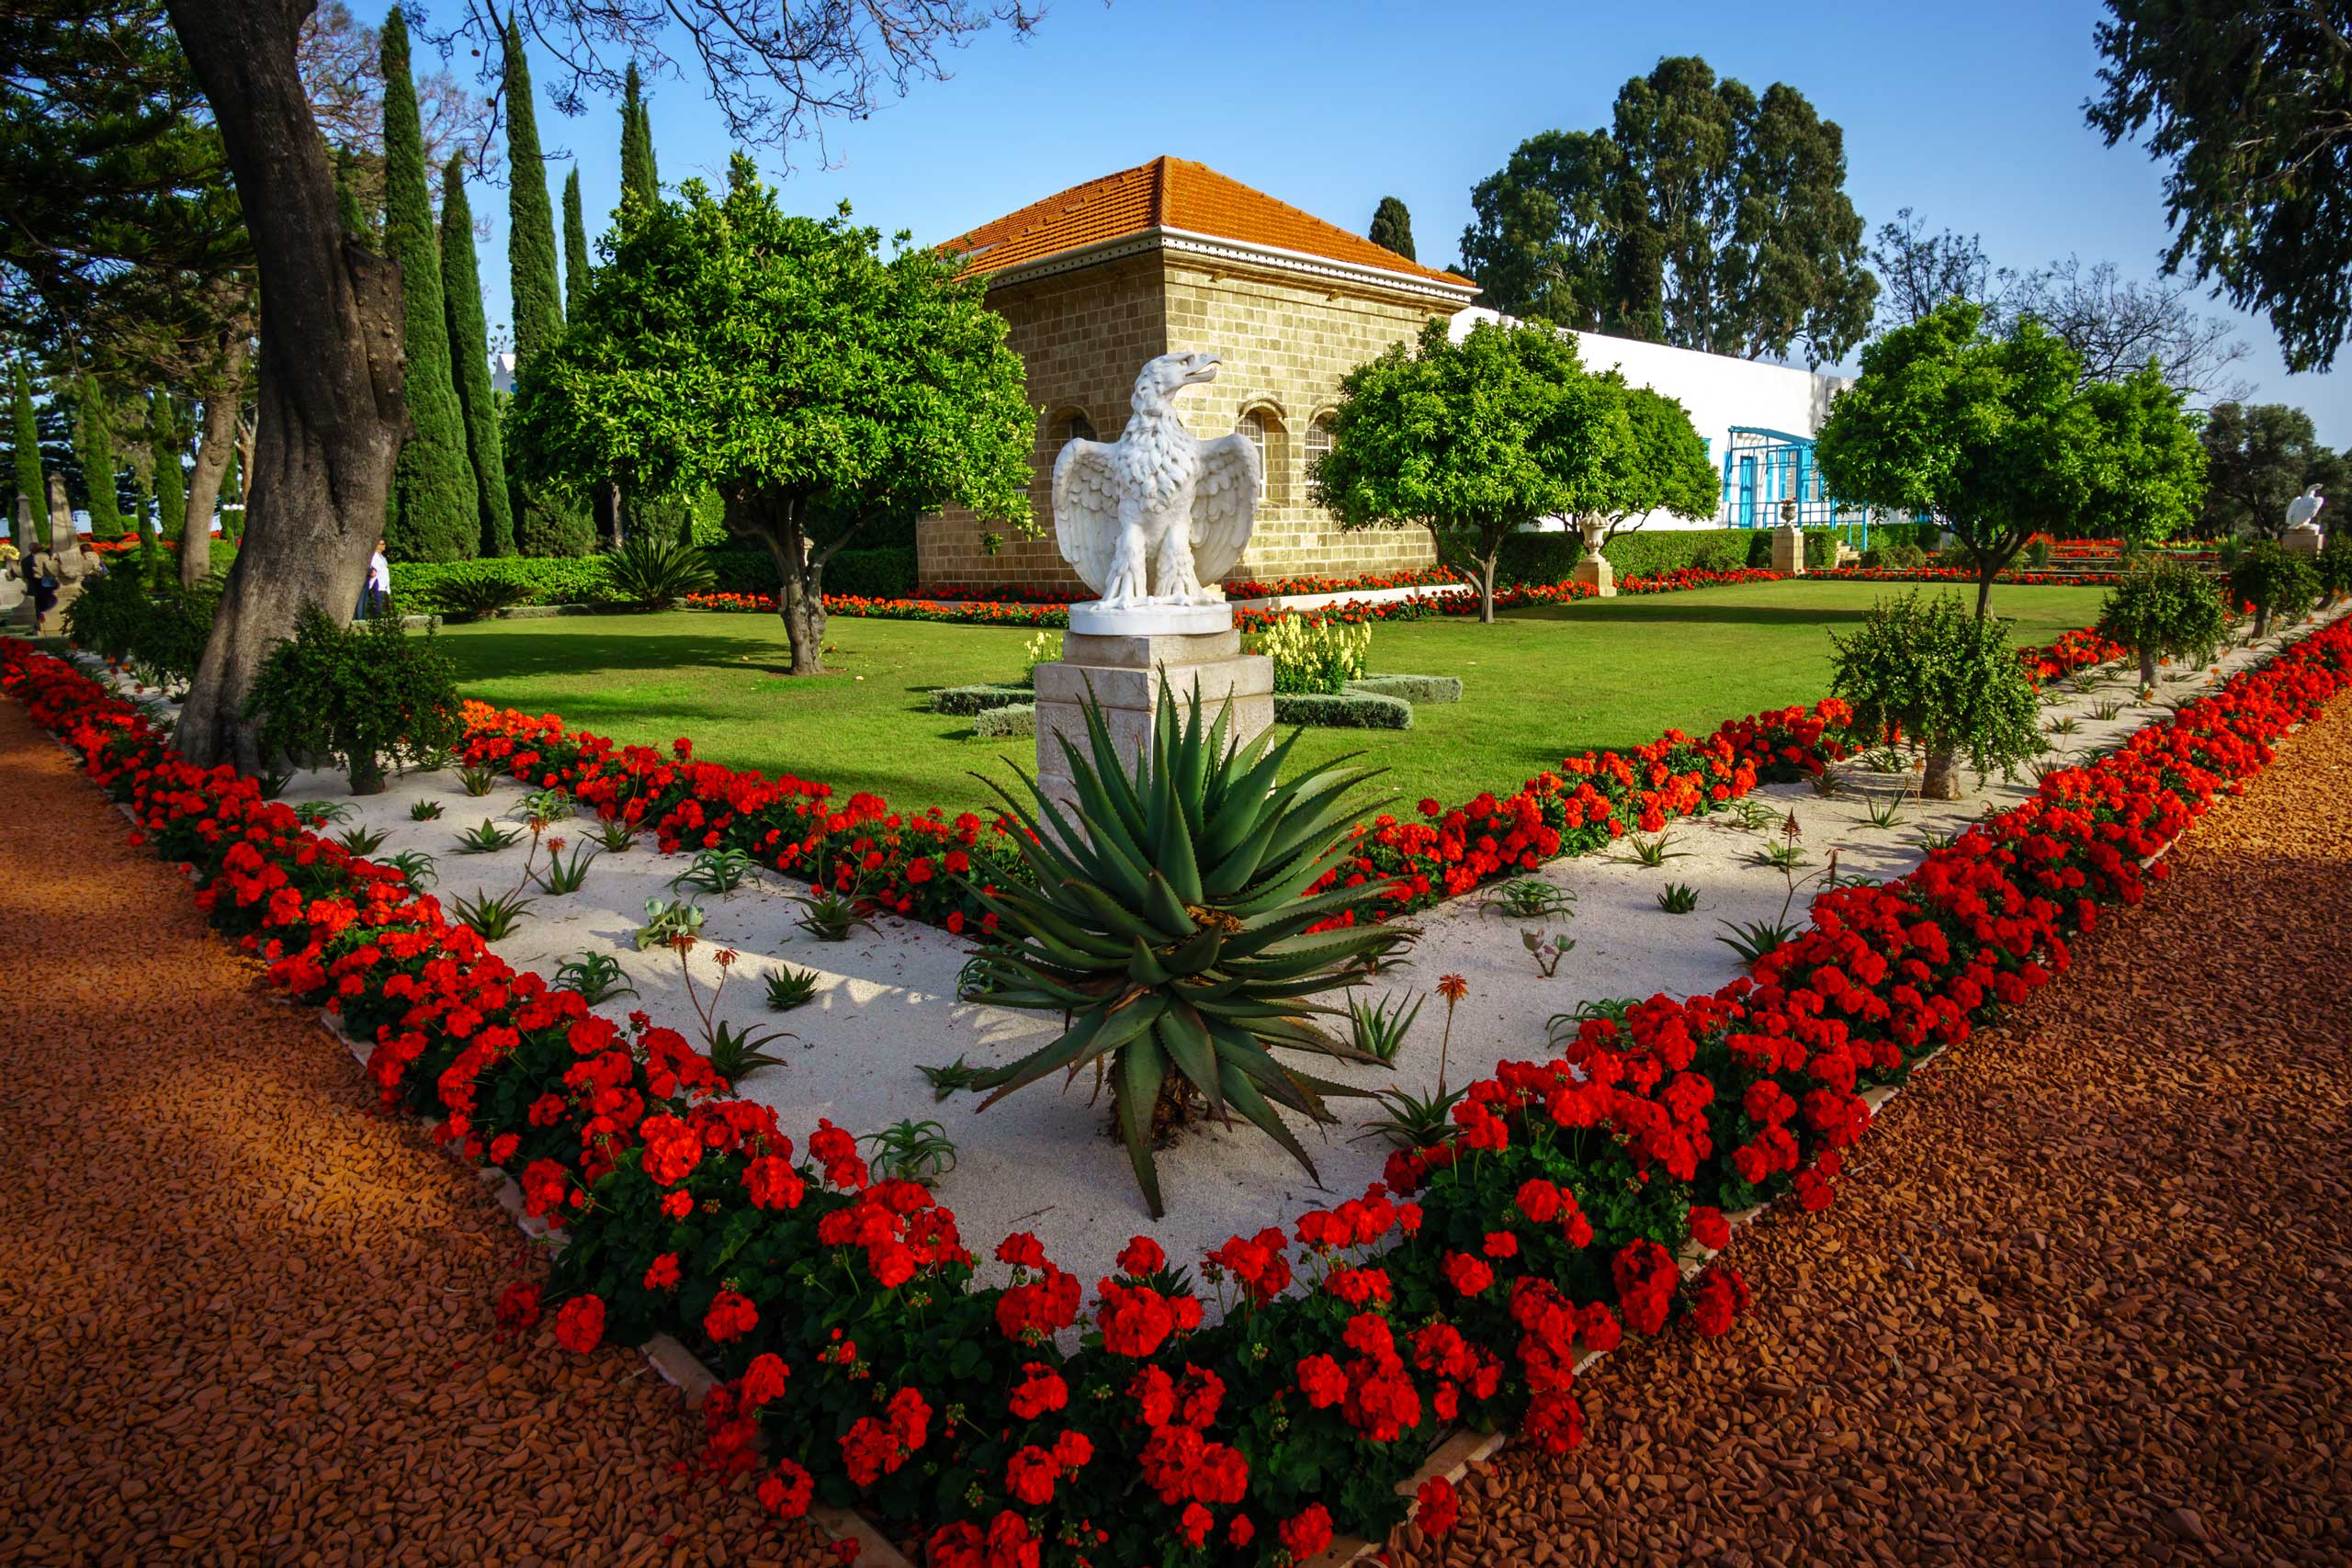 Corder view of the Shrine of Baha'u'llah with red flowers and a eagle statue